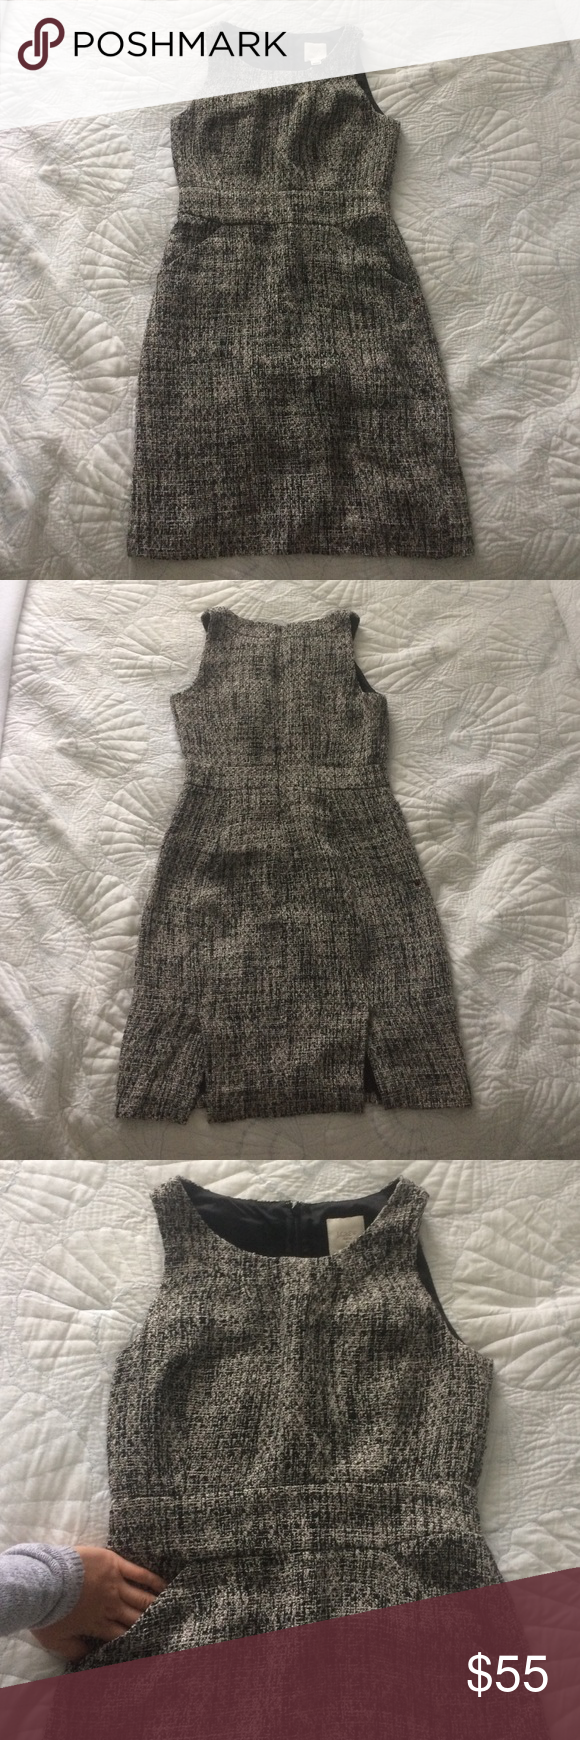 Jcrew tweed dress J. Crew black and white tweed dress. Fully functional front pockets with a fitted waist. Zips in the back. Size 8. Like new. Perfect for work & chic enough for happy hour! J. Crew Dresses Mini